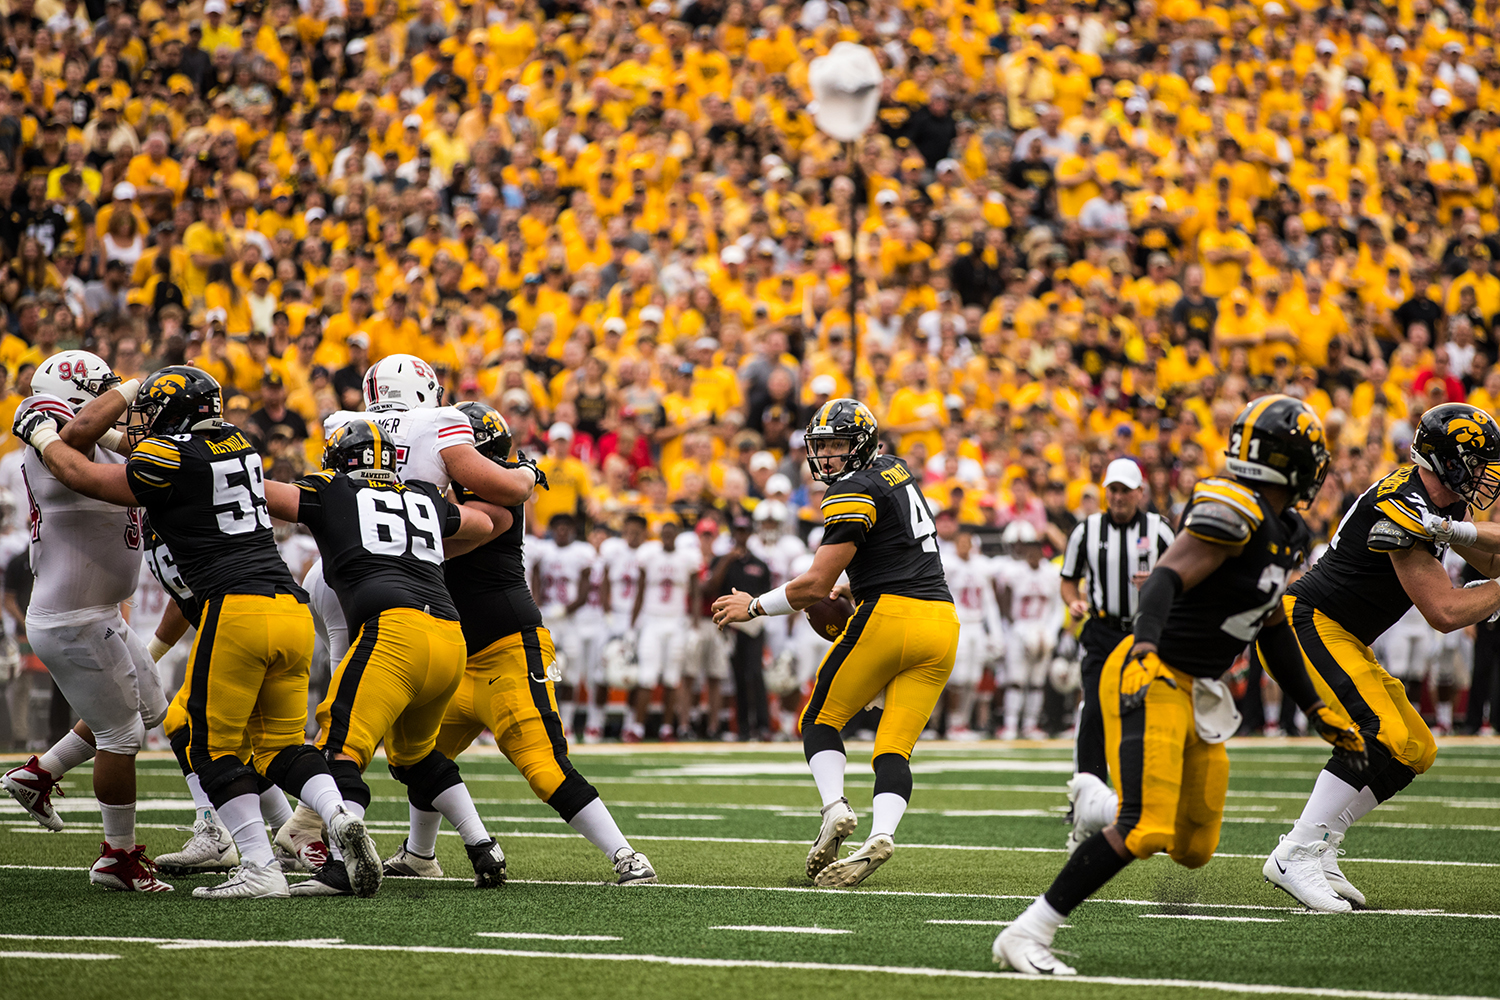 Iowa quarterback Nate Stanley drops back during Iowa's game against Northern Illinois at Kinnick Stadium on Saturday, September 1, 2018. during Iowa's game against Northern Illinois at Kinnick Stadium on Saturday, September 1, 2018. The Hawkeyes defeated the Huskies 33-7.